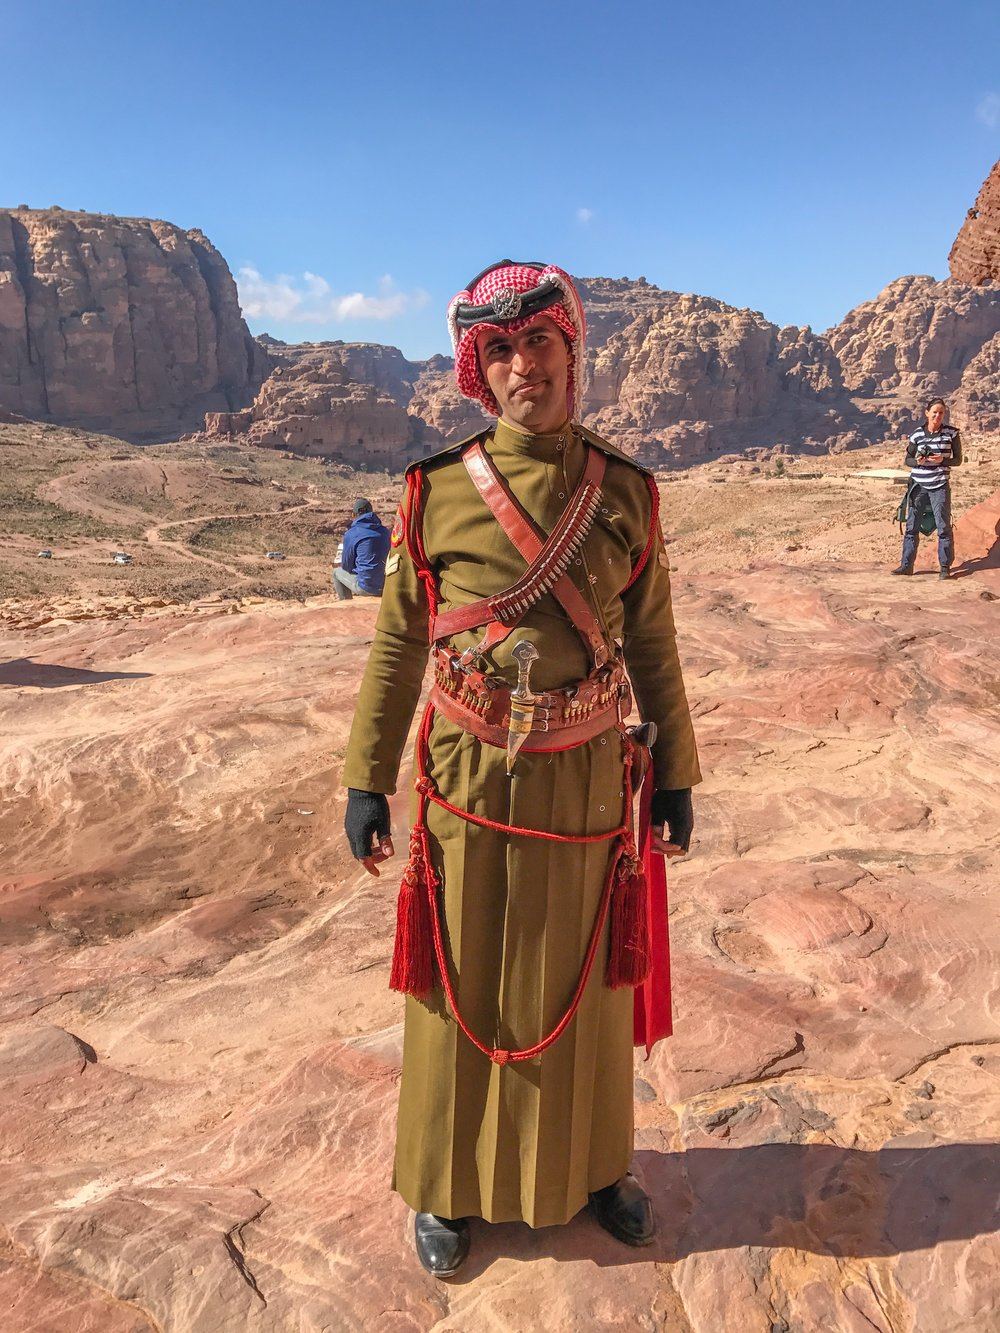 A police officer in Petra